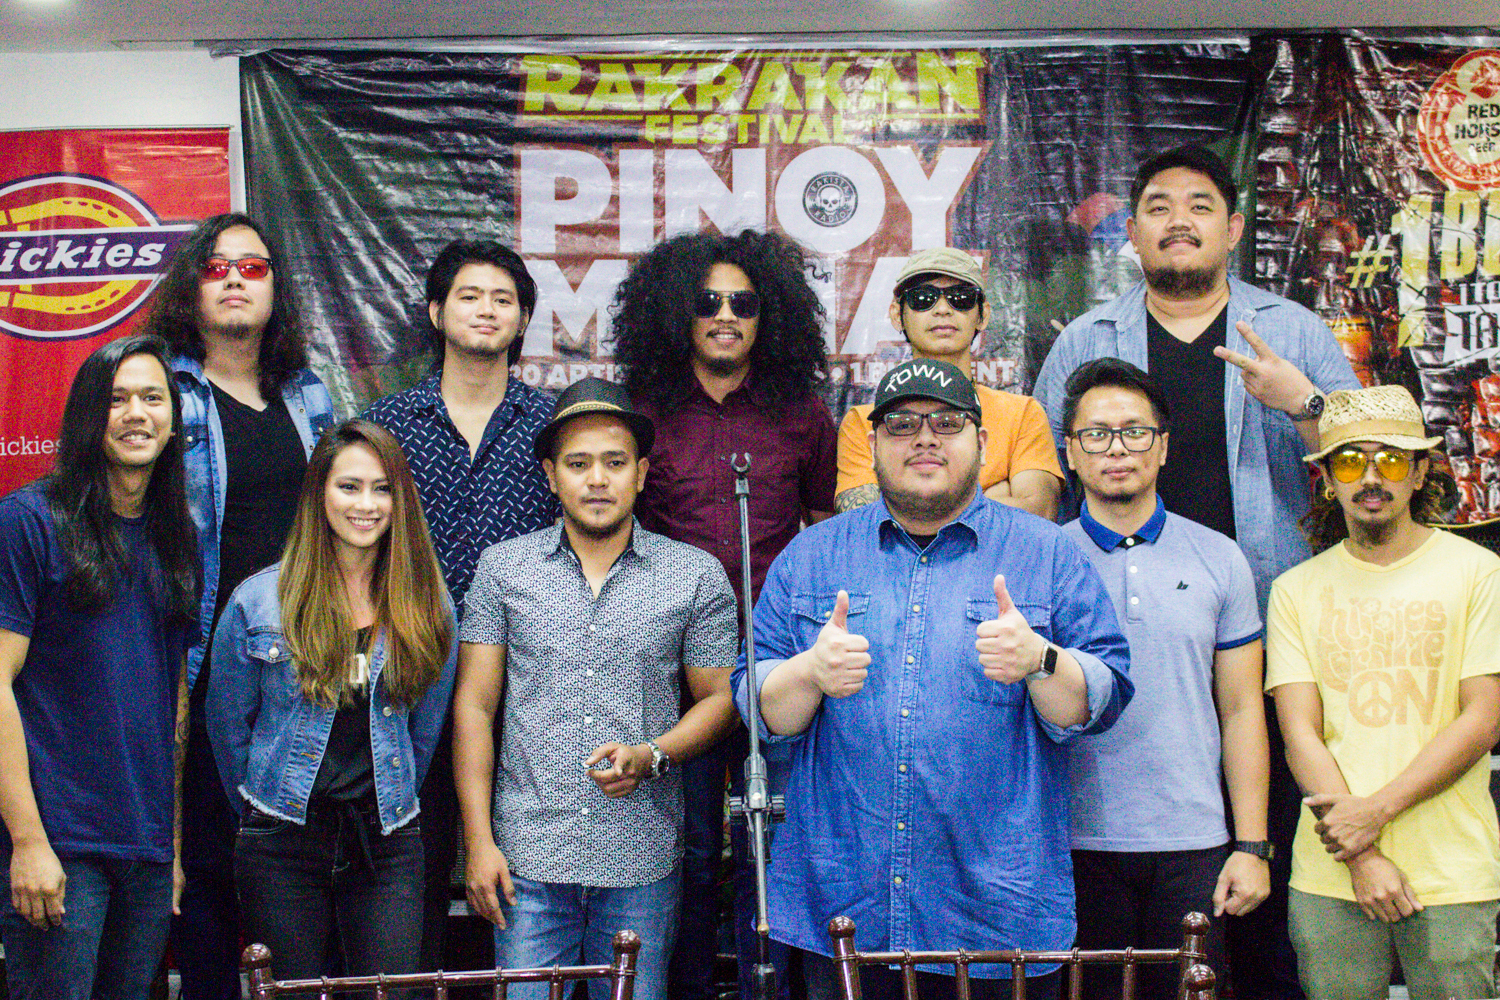 Here's what happened during the presscon of Rakrakan Festival 2